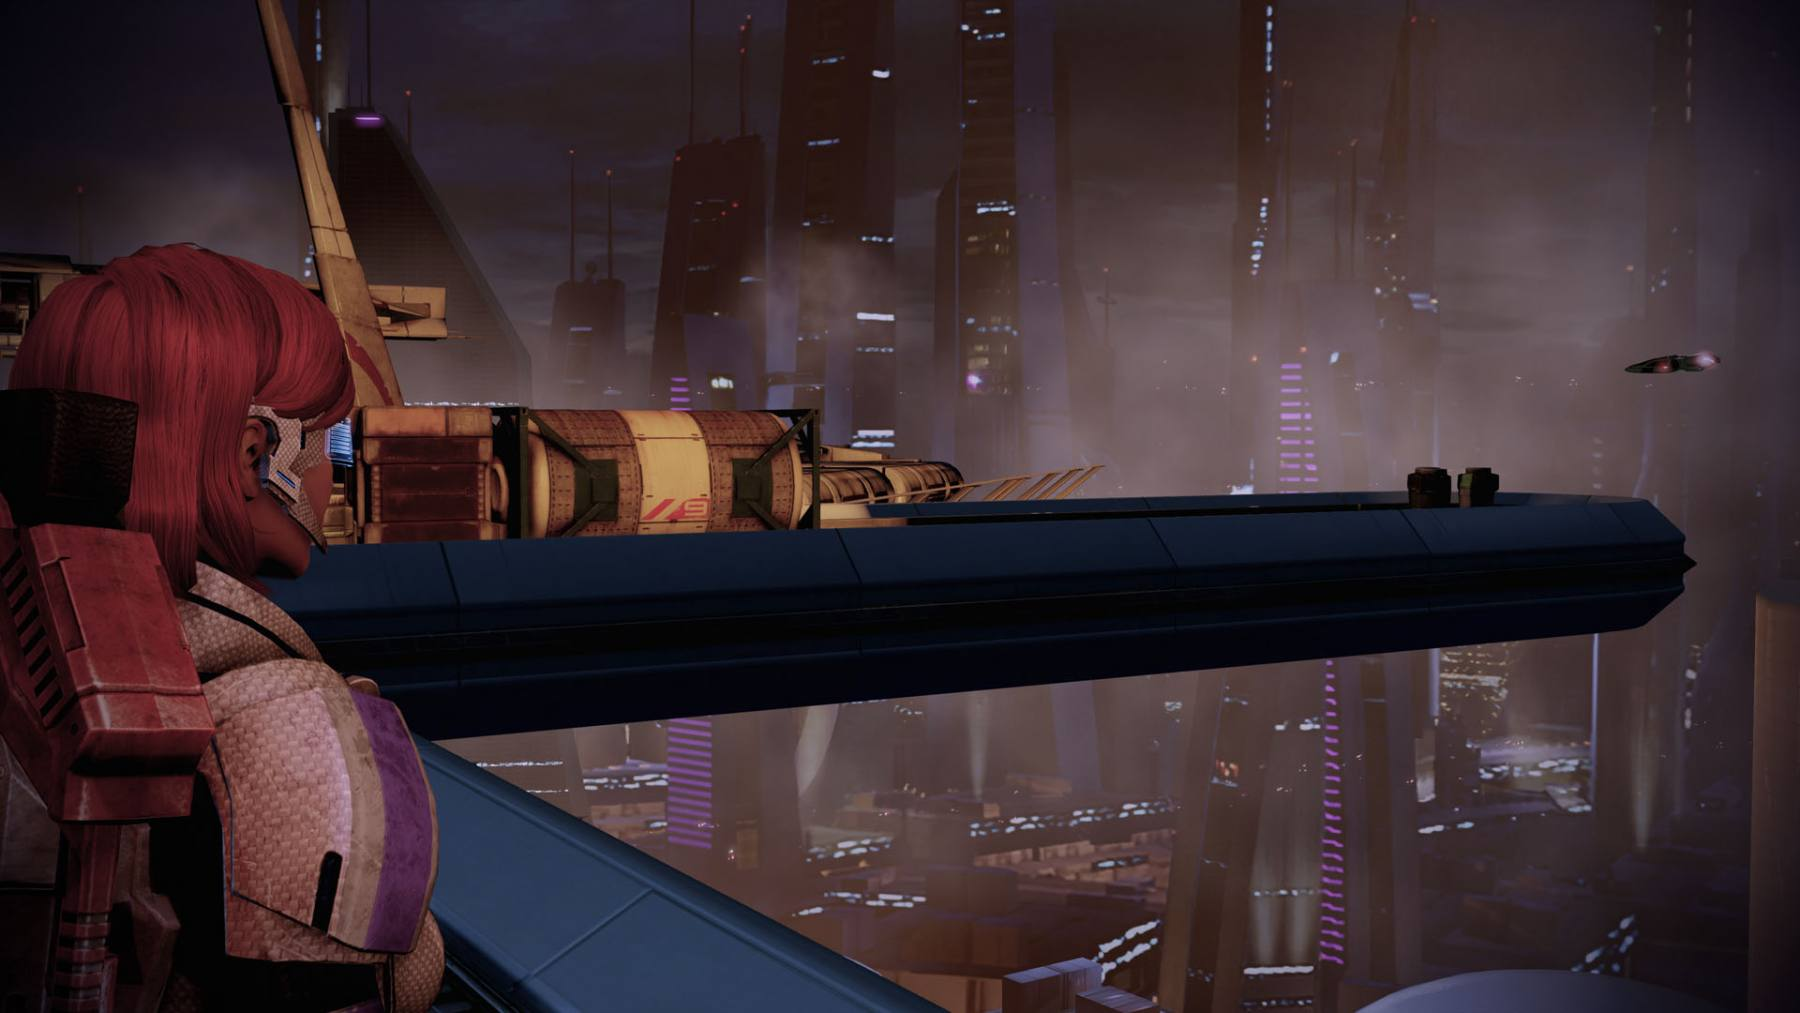 Mass-Effect-2-Looking-Out-on-Illium